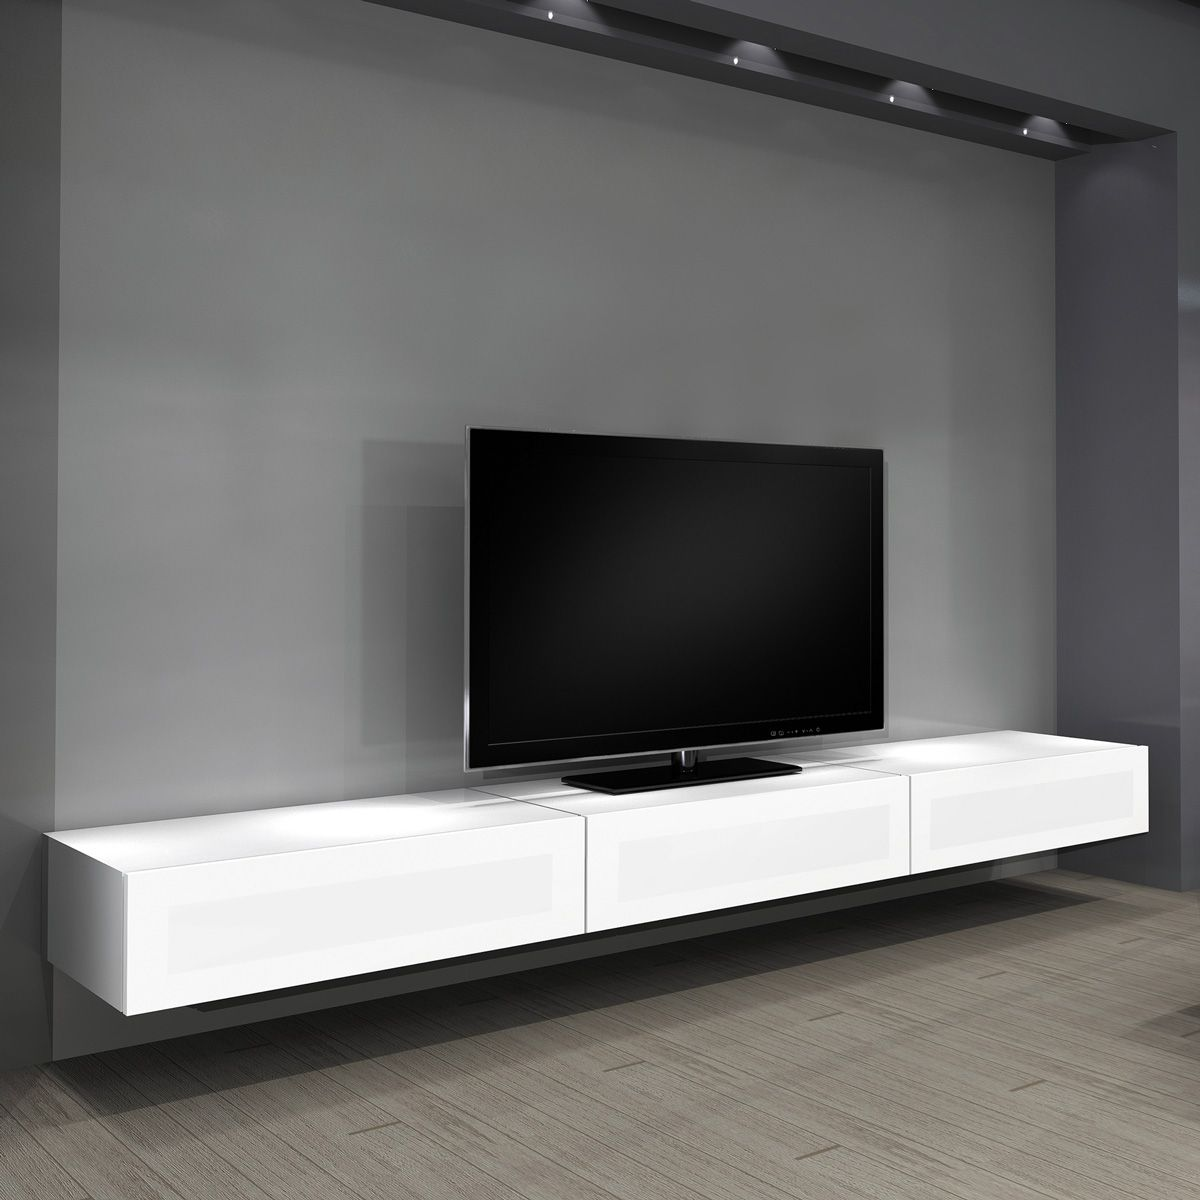 Floating Wall Mounted Tv Unit Simple Modern Floating Entertainment Tv Cabinet With Gray